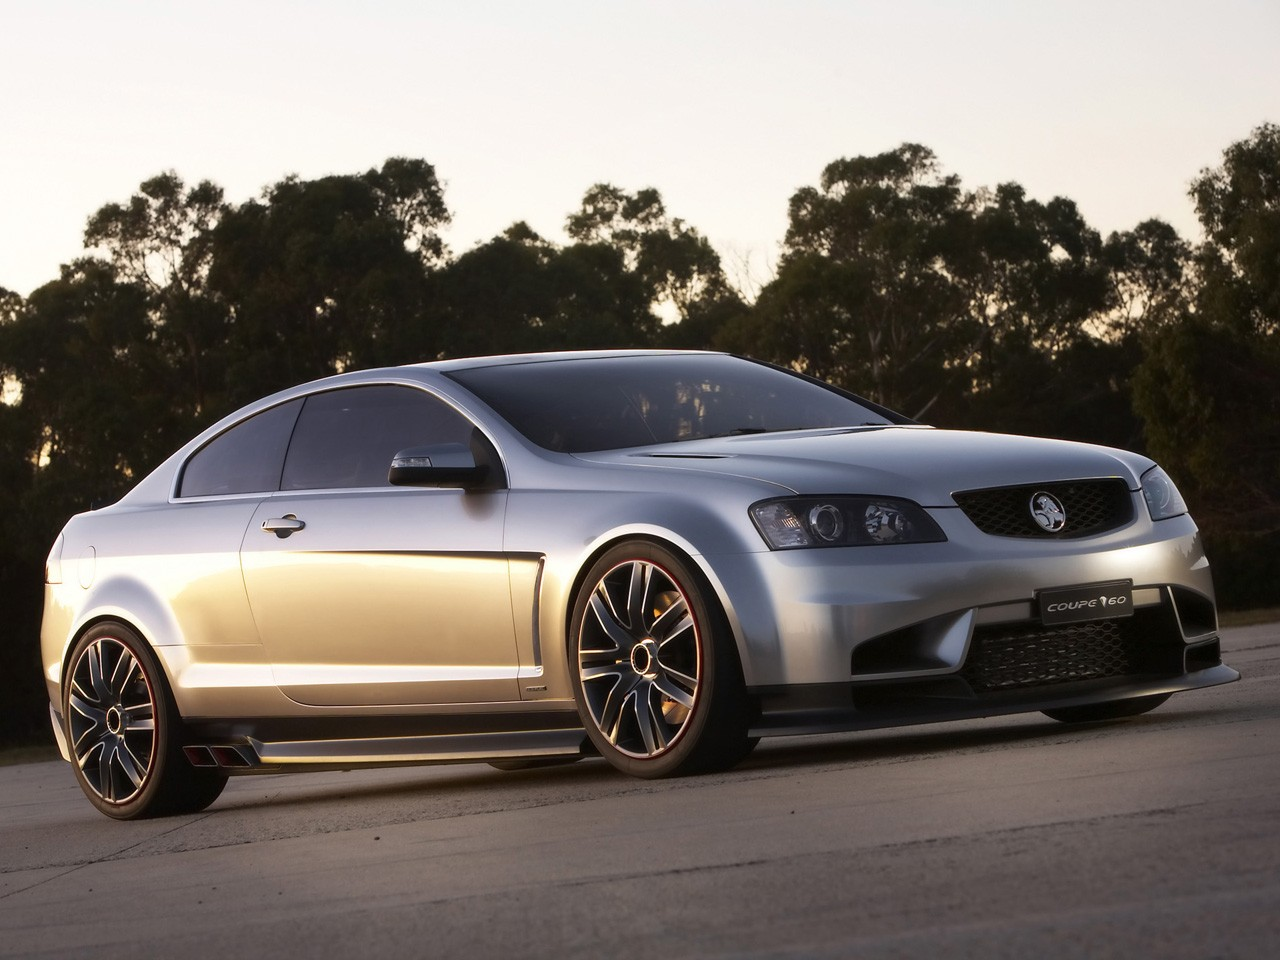 2008 Holden Coupe 60 Concept